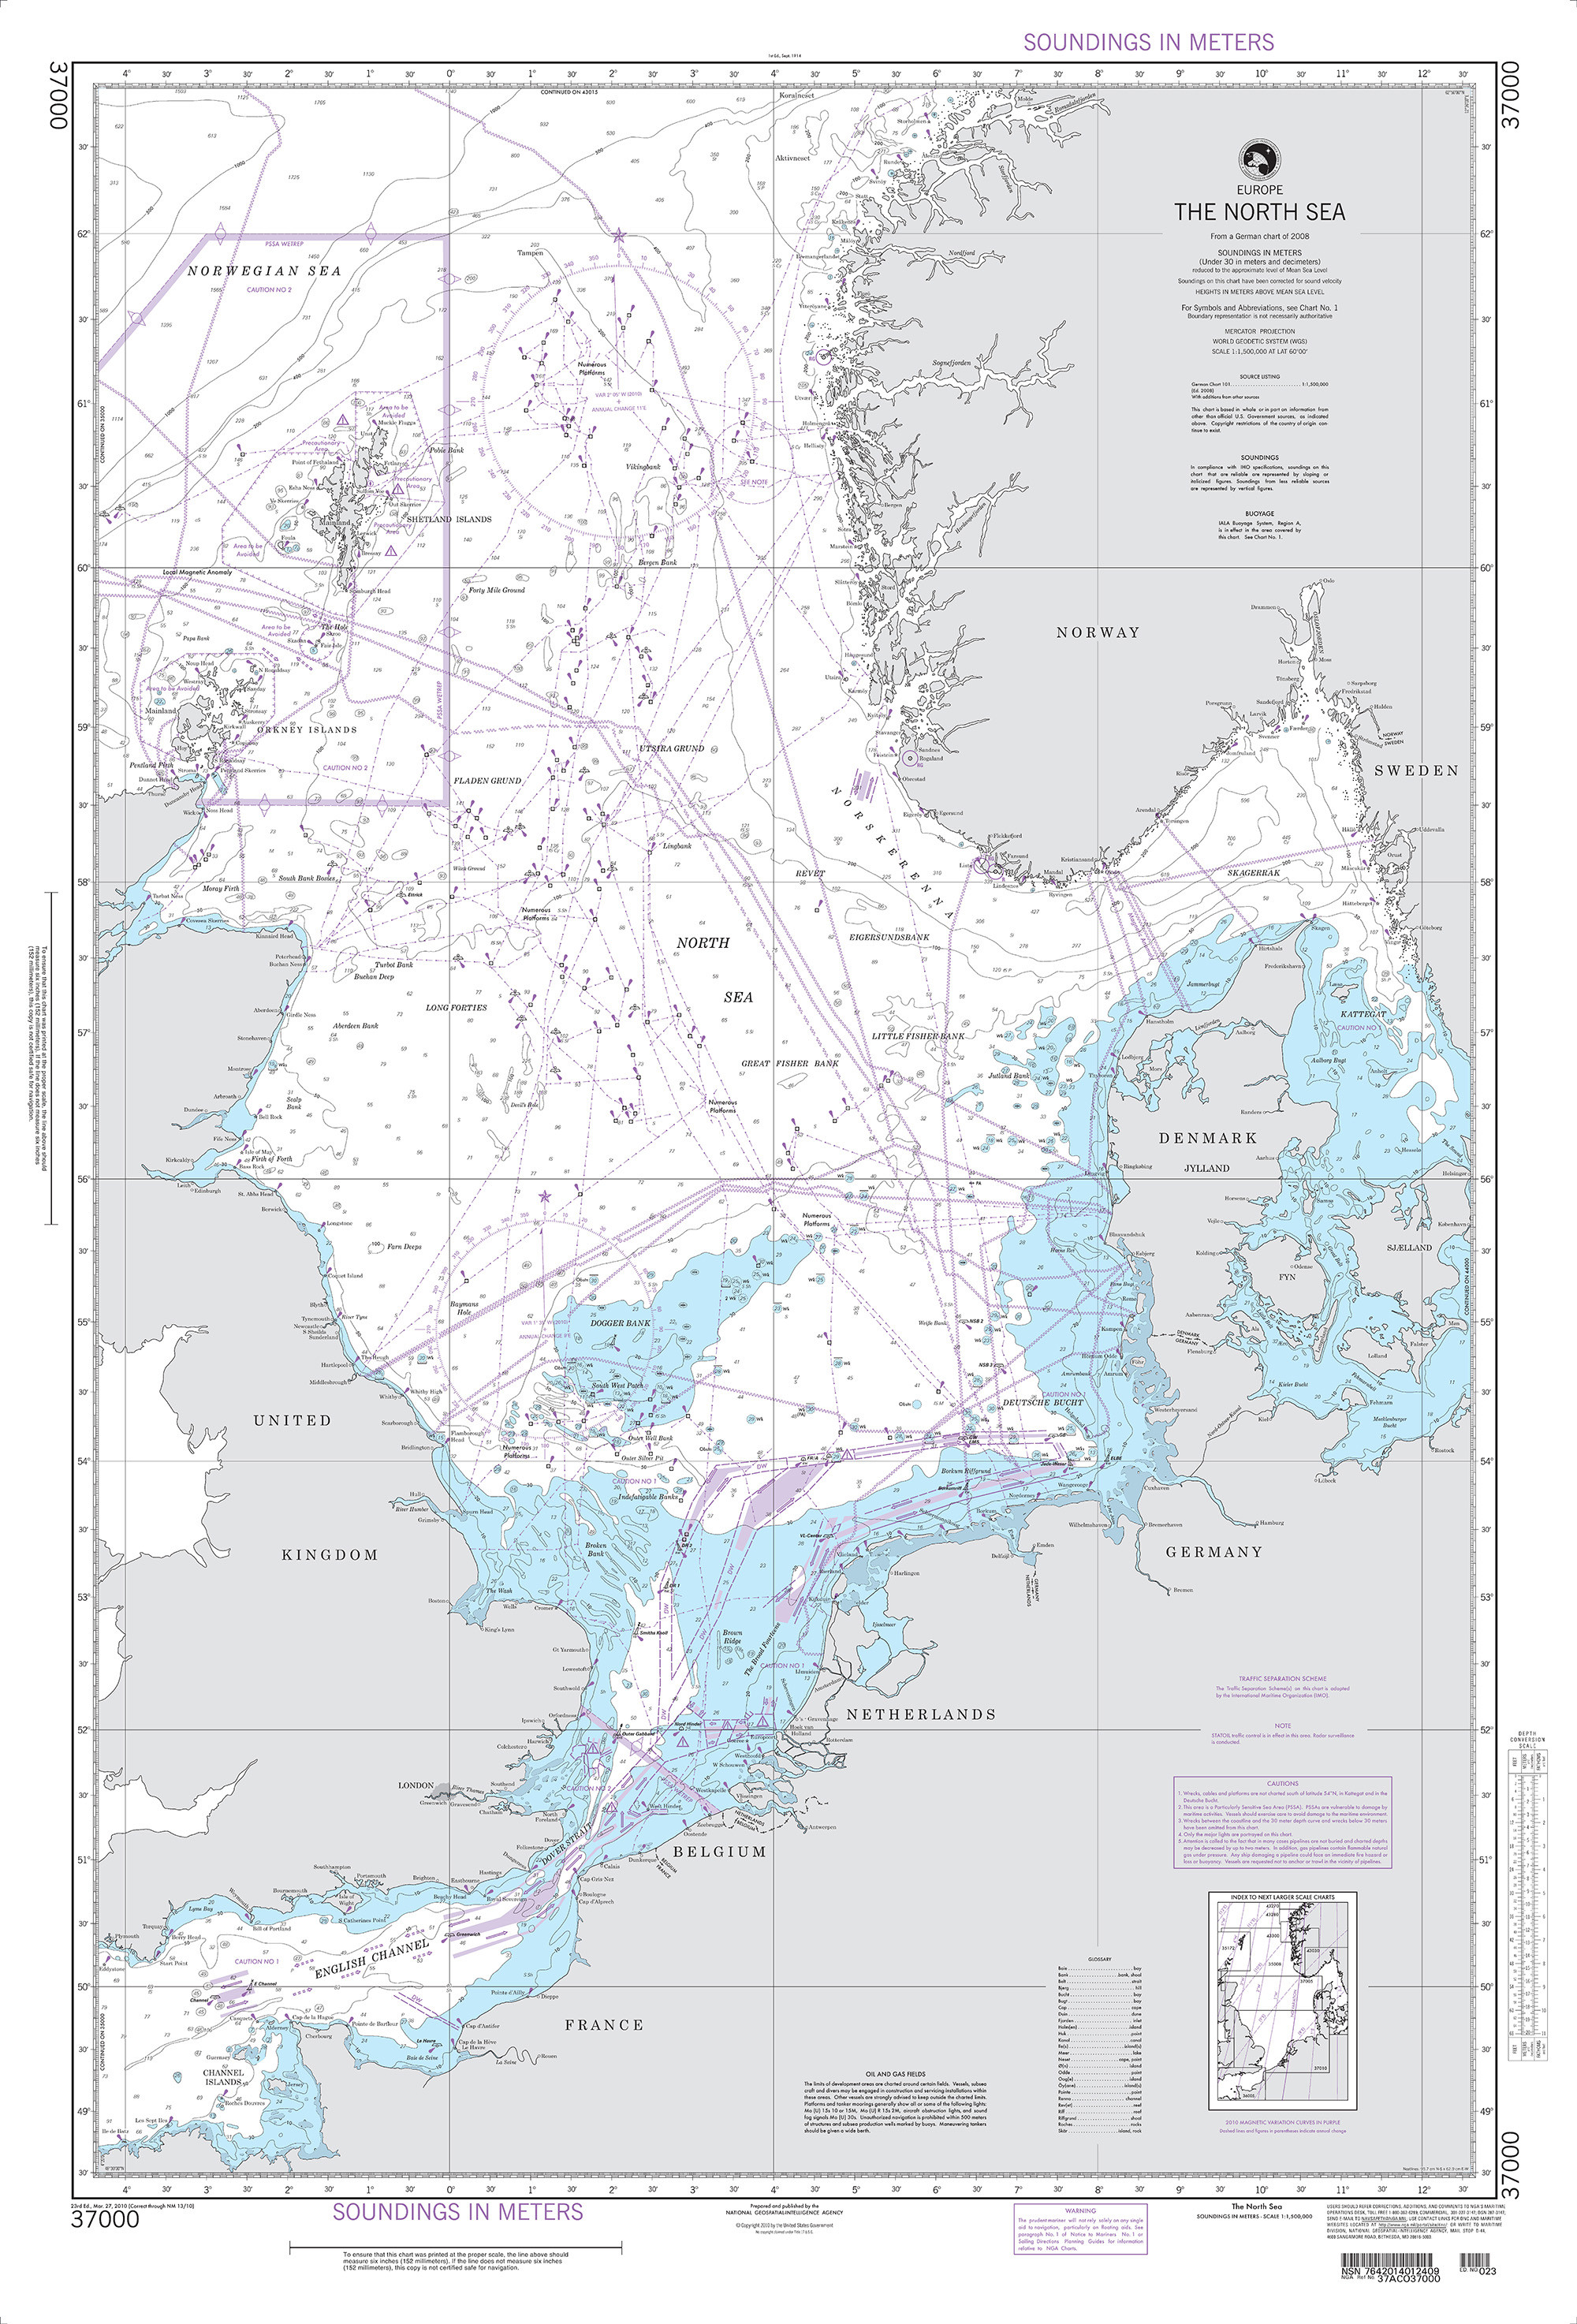 NGA Nautical Chart - 37000 INT  140, The North Sea